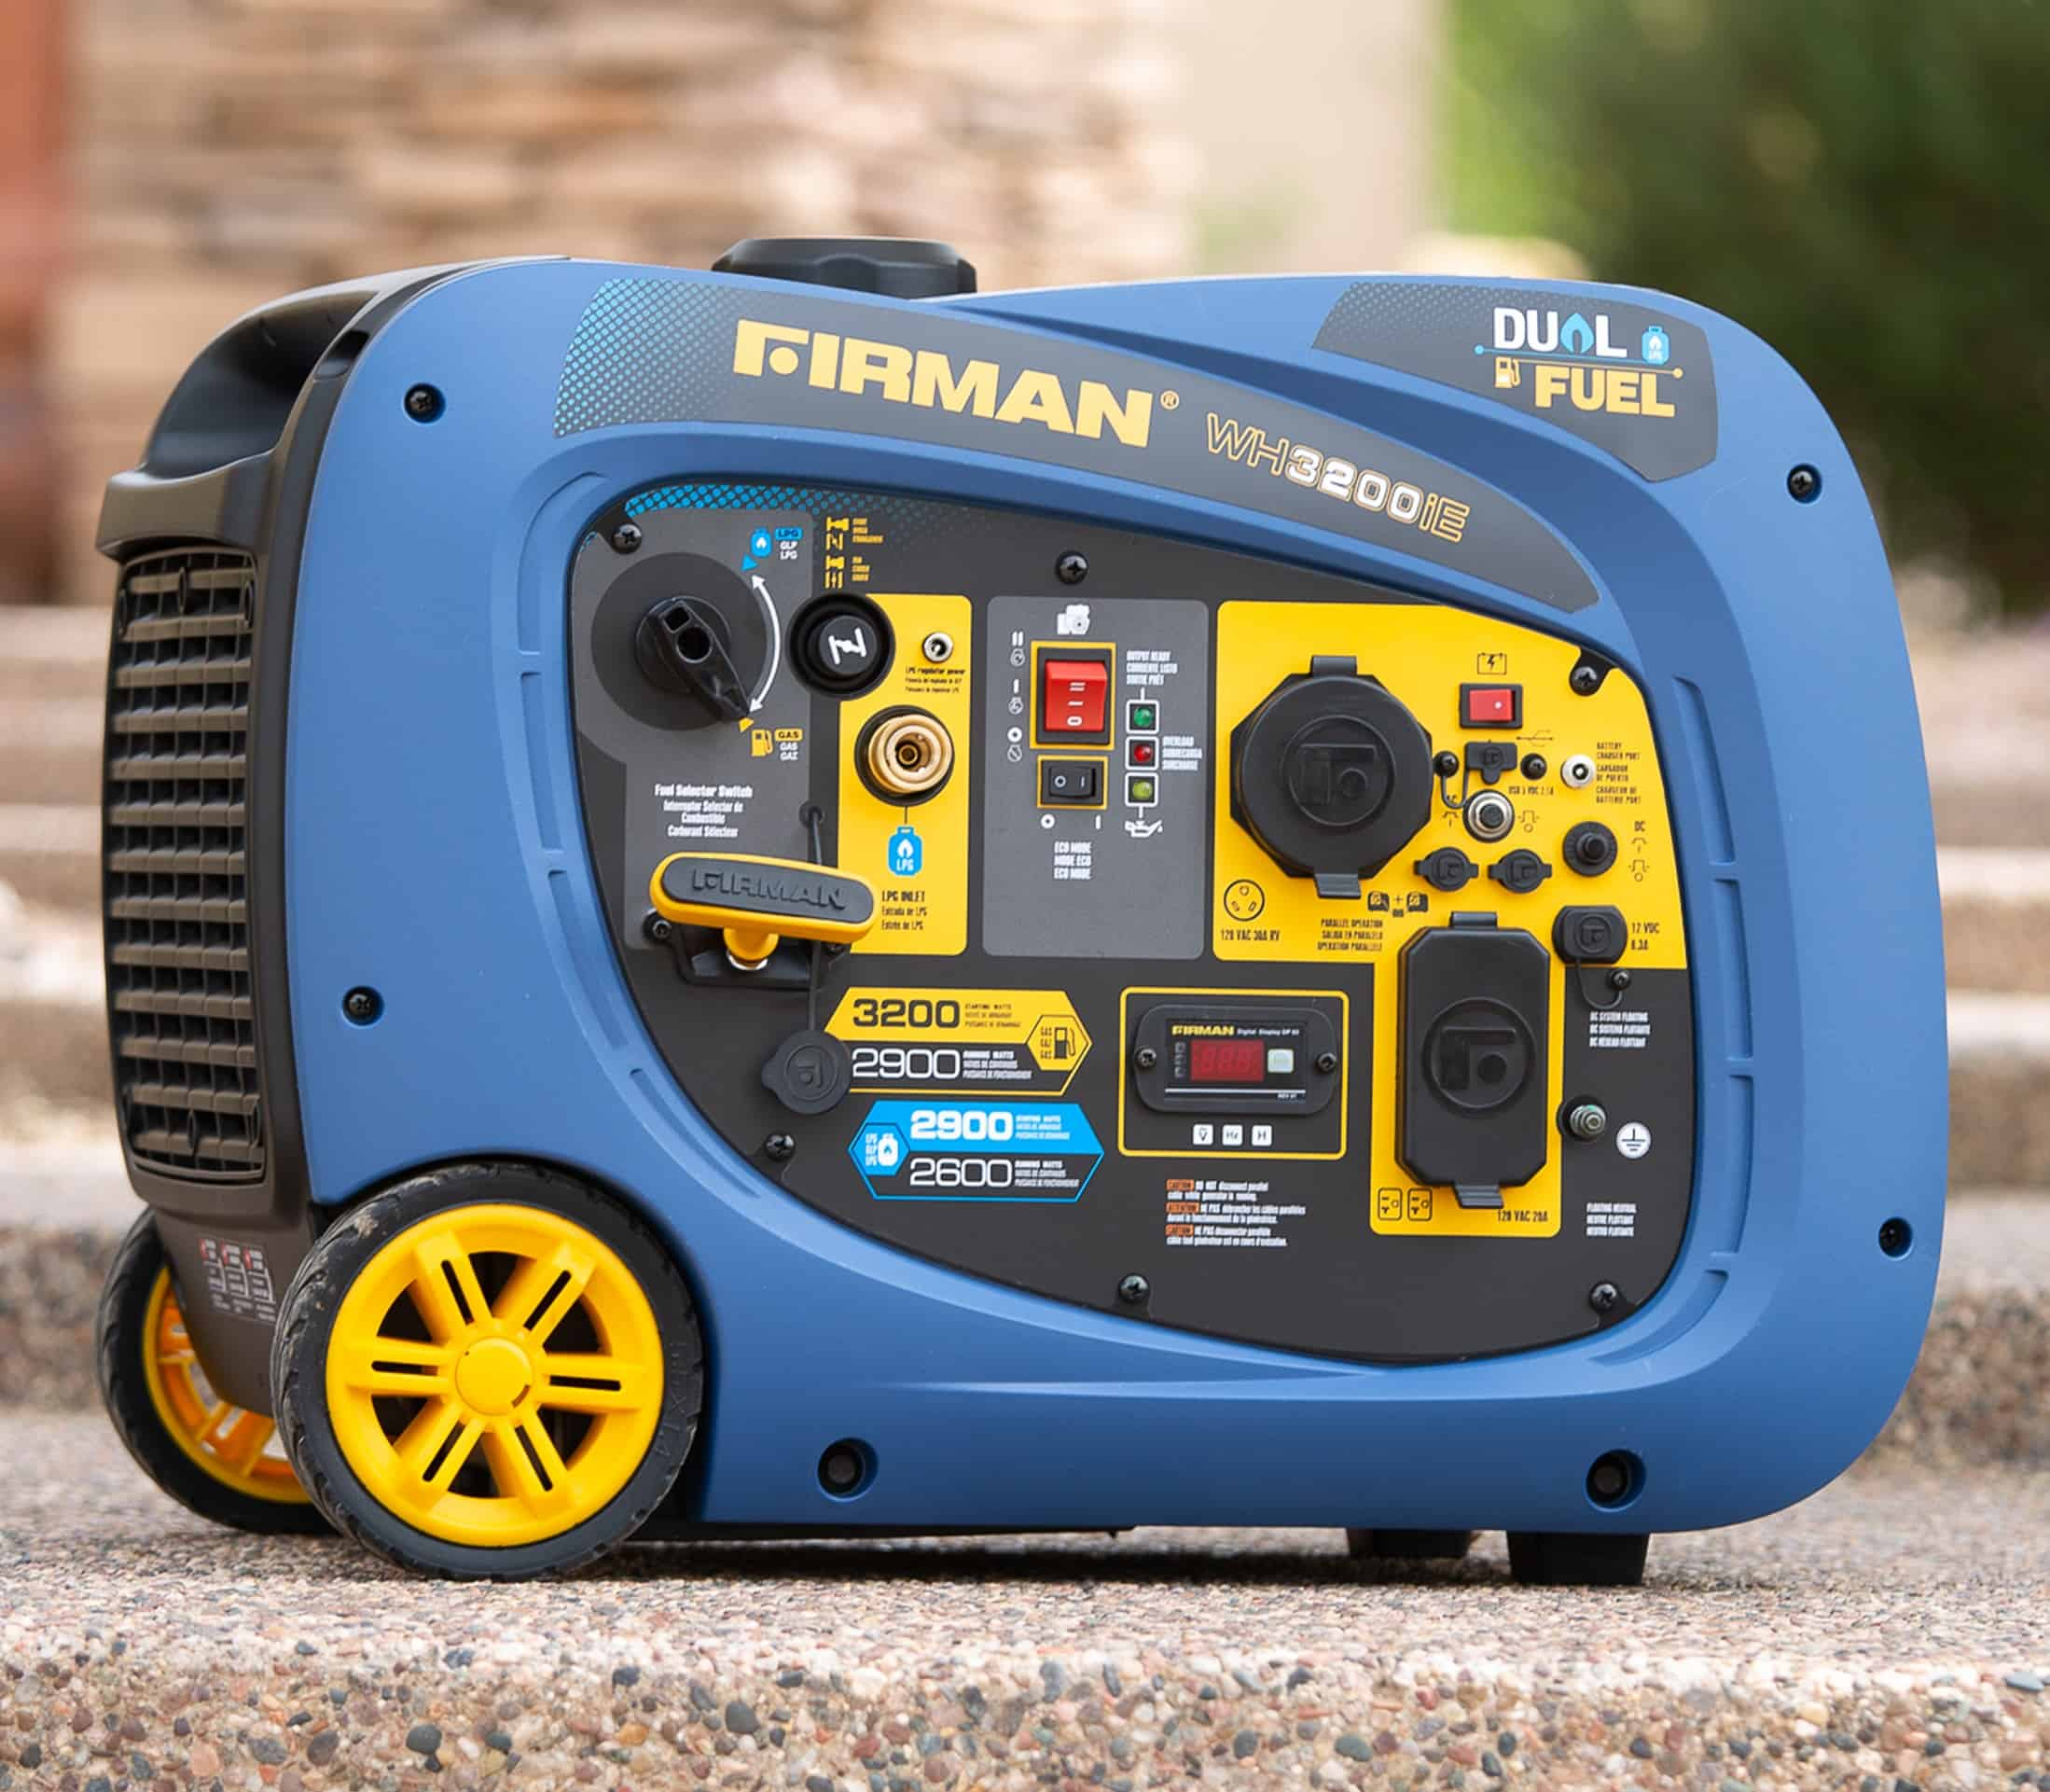 Firman Dual Fuel Inverter Generator